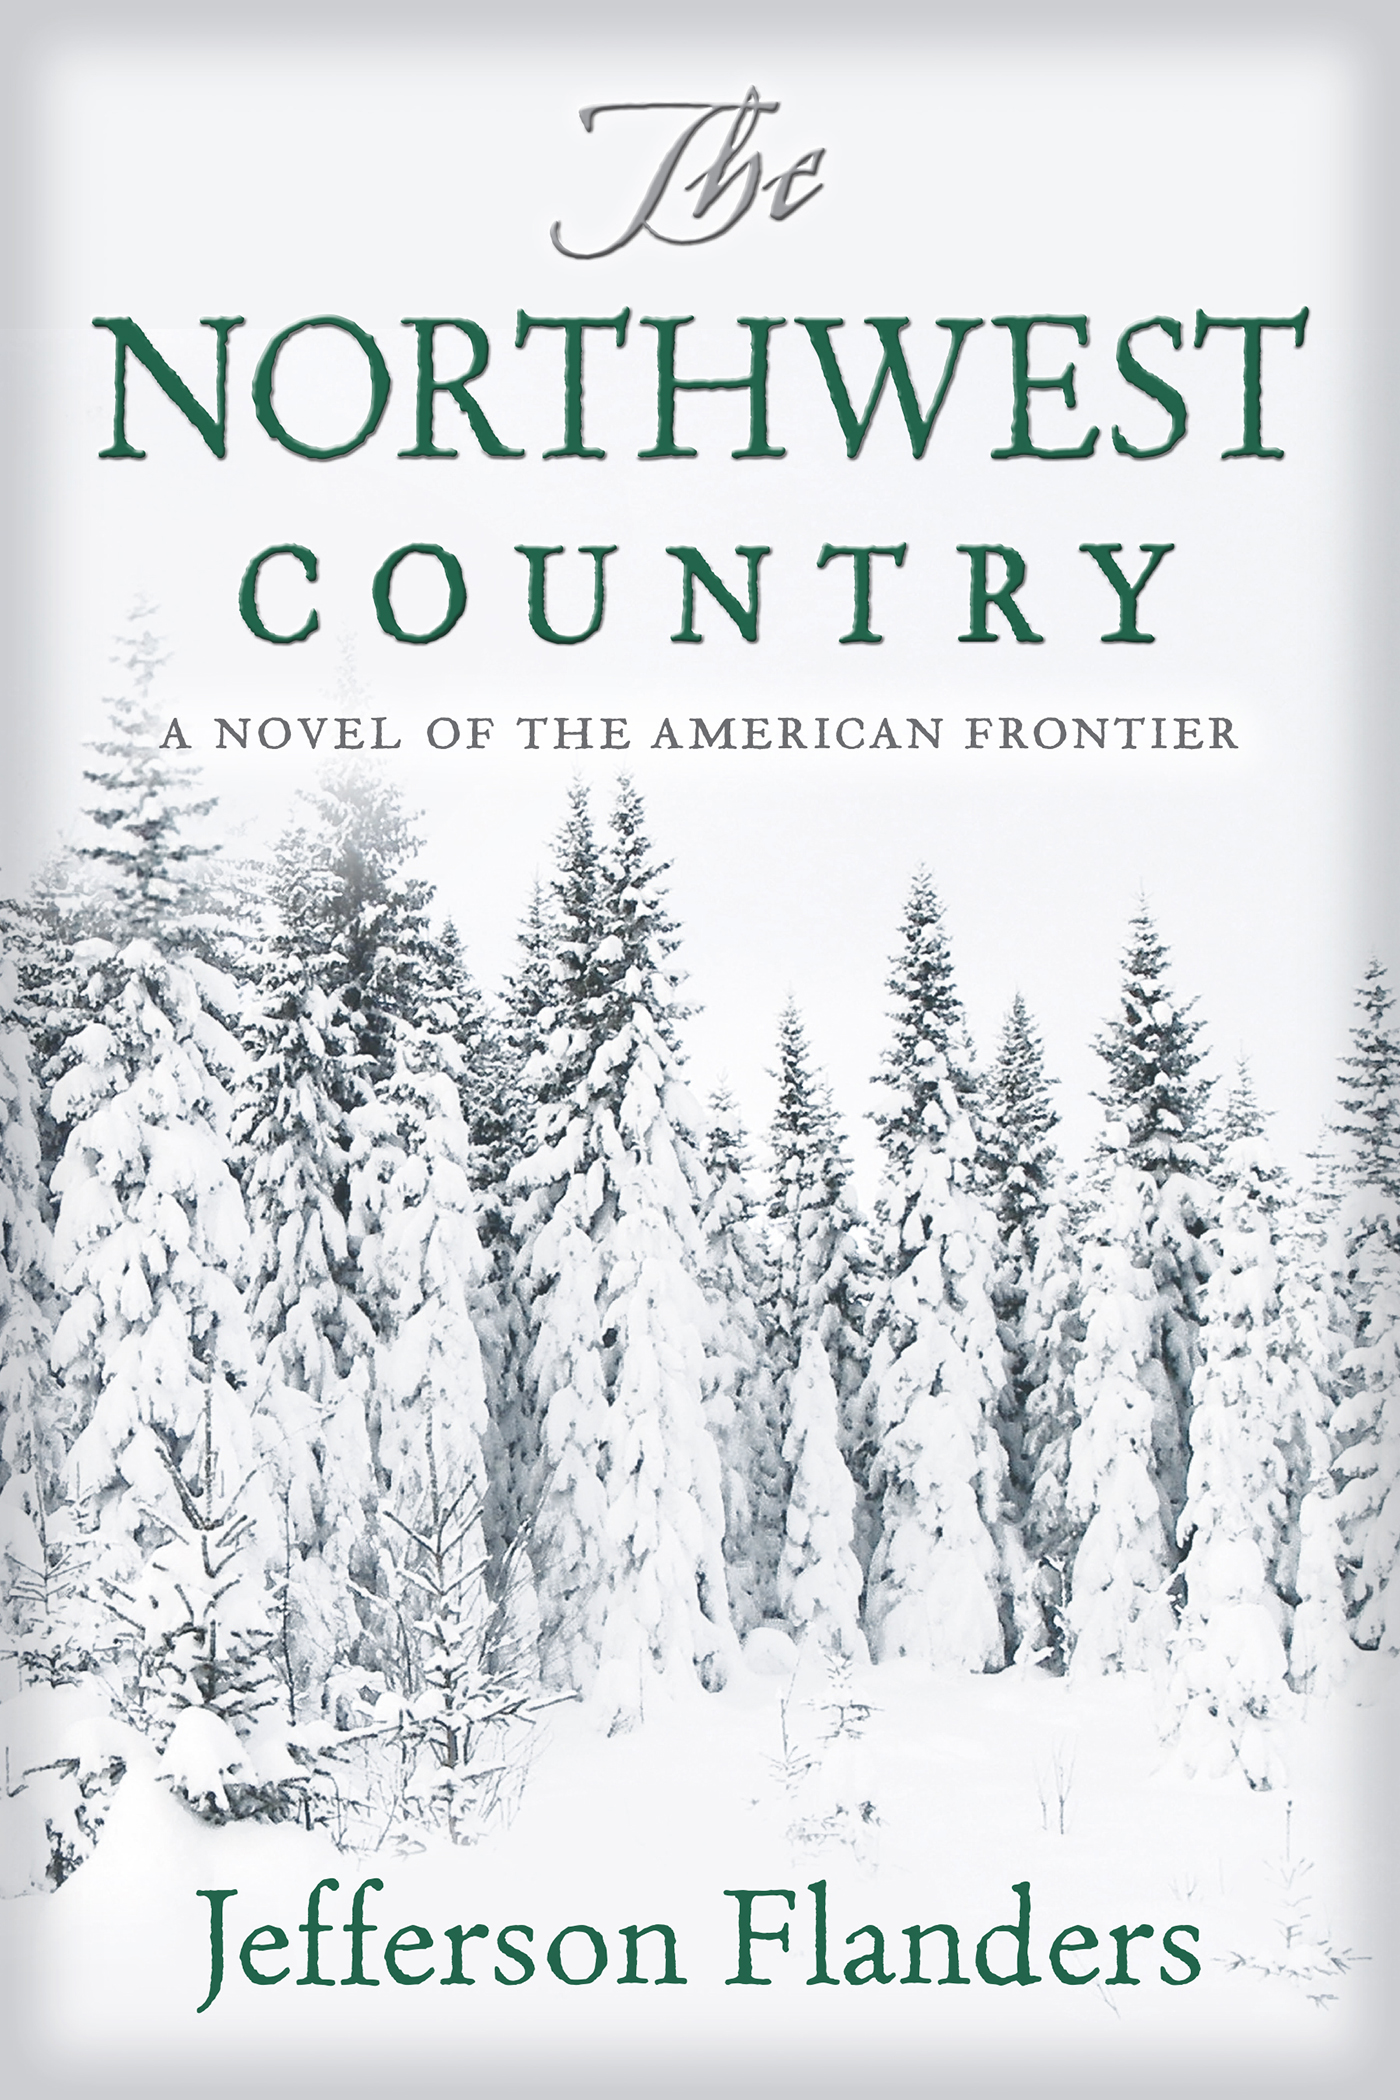 Northwest Country